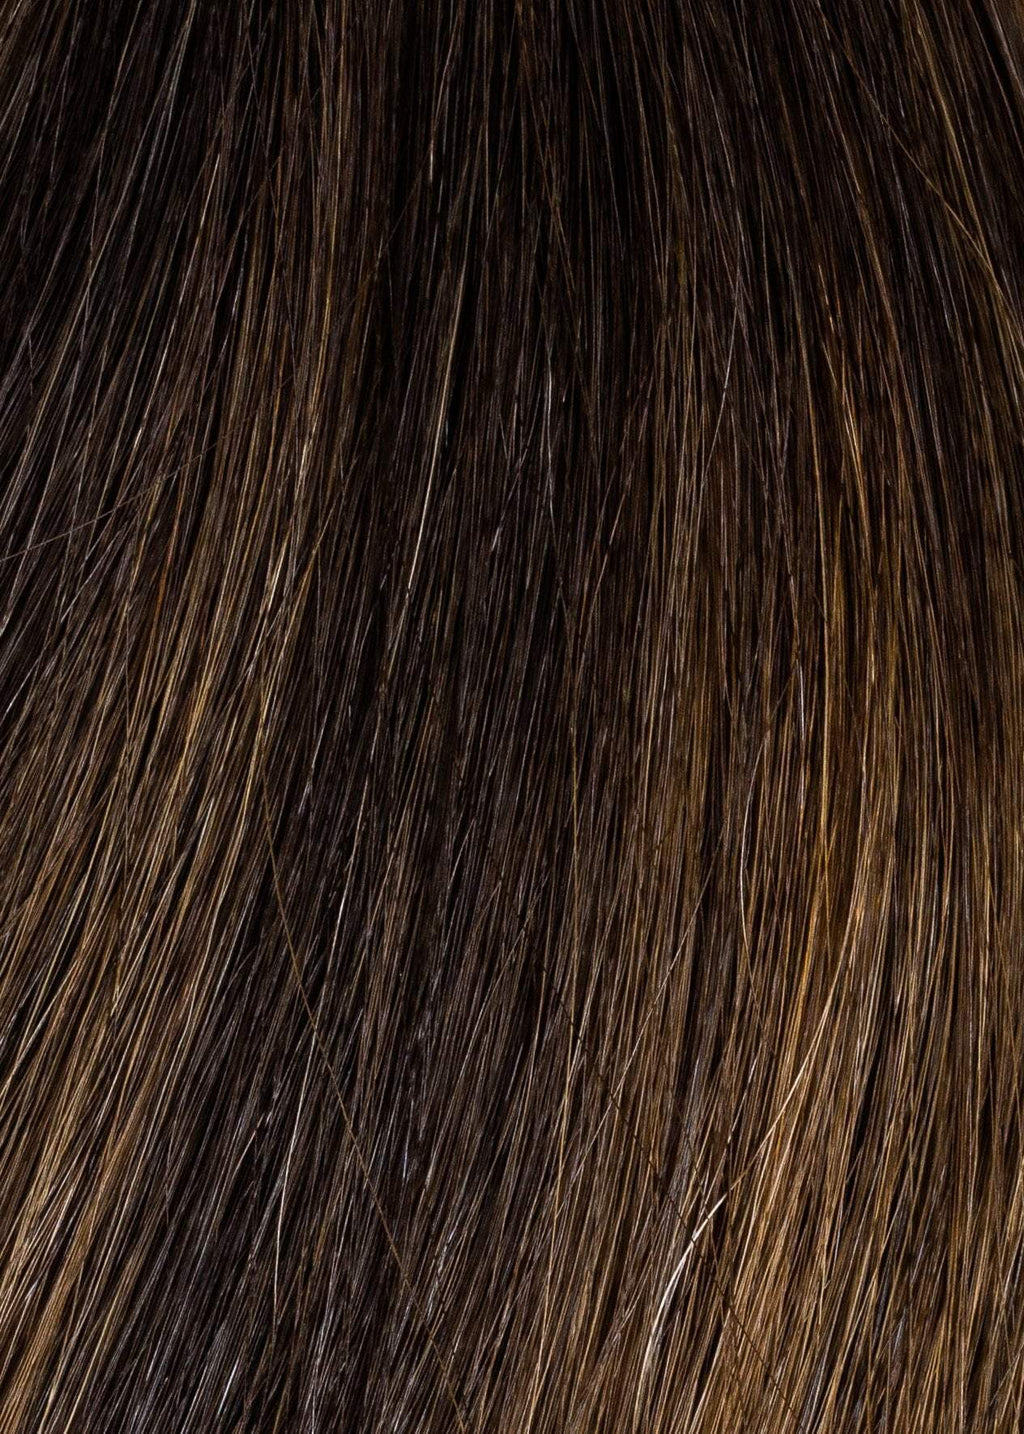 Philocaly Hair Extensions Bali Bound (Clip-in)